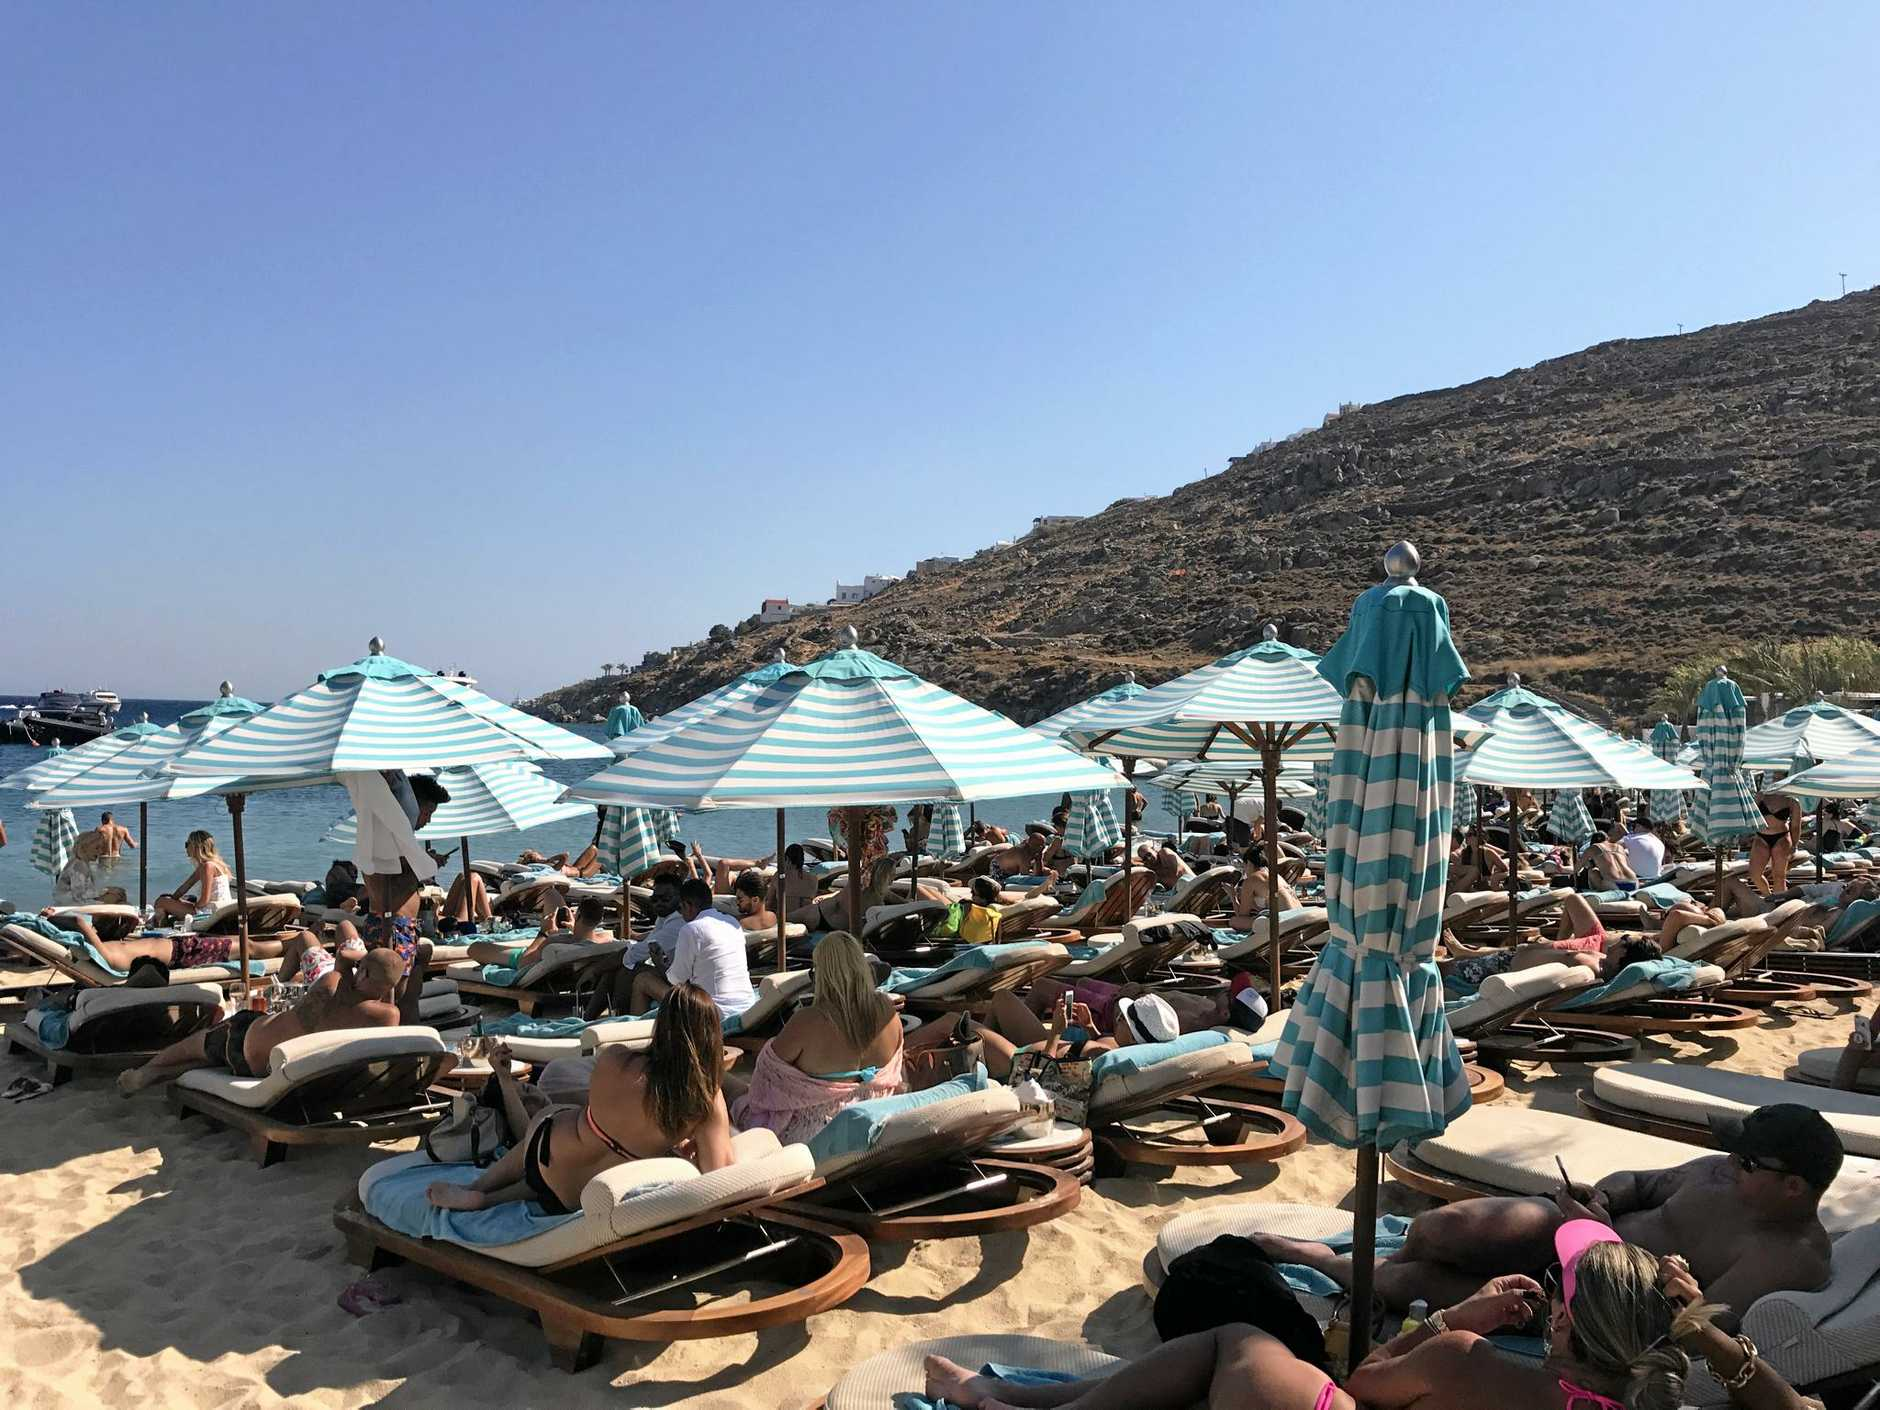 Tourists battle for space on the beach at Psarou Bay on Mykonos.